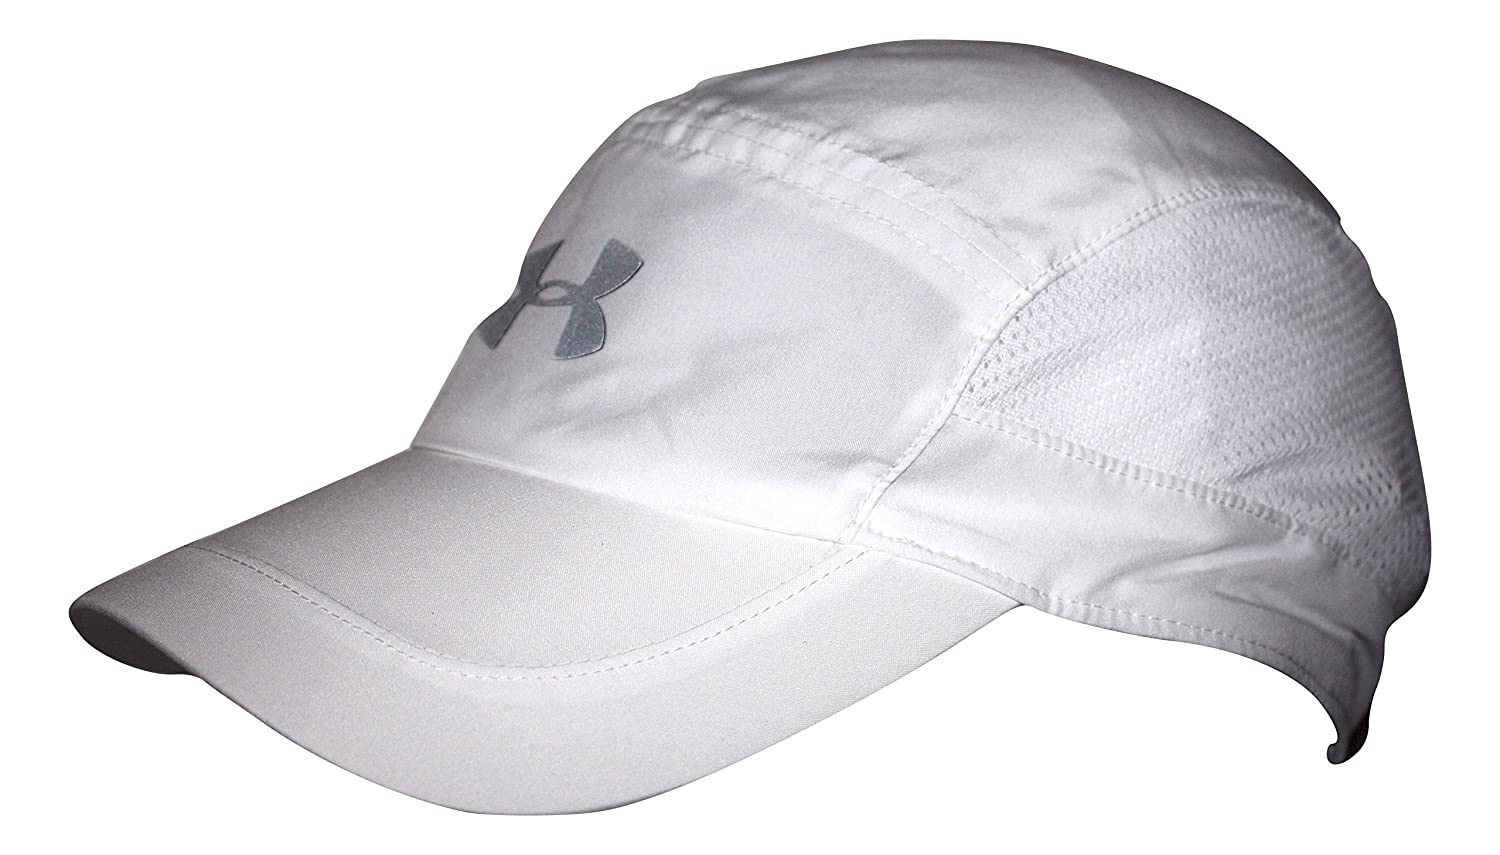 2a3018e5968 Amazon.com  Under Armour Women s Fly Fast Cap  Sports   Outdoors